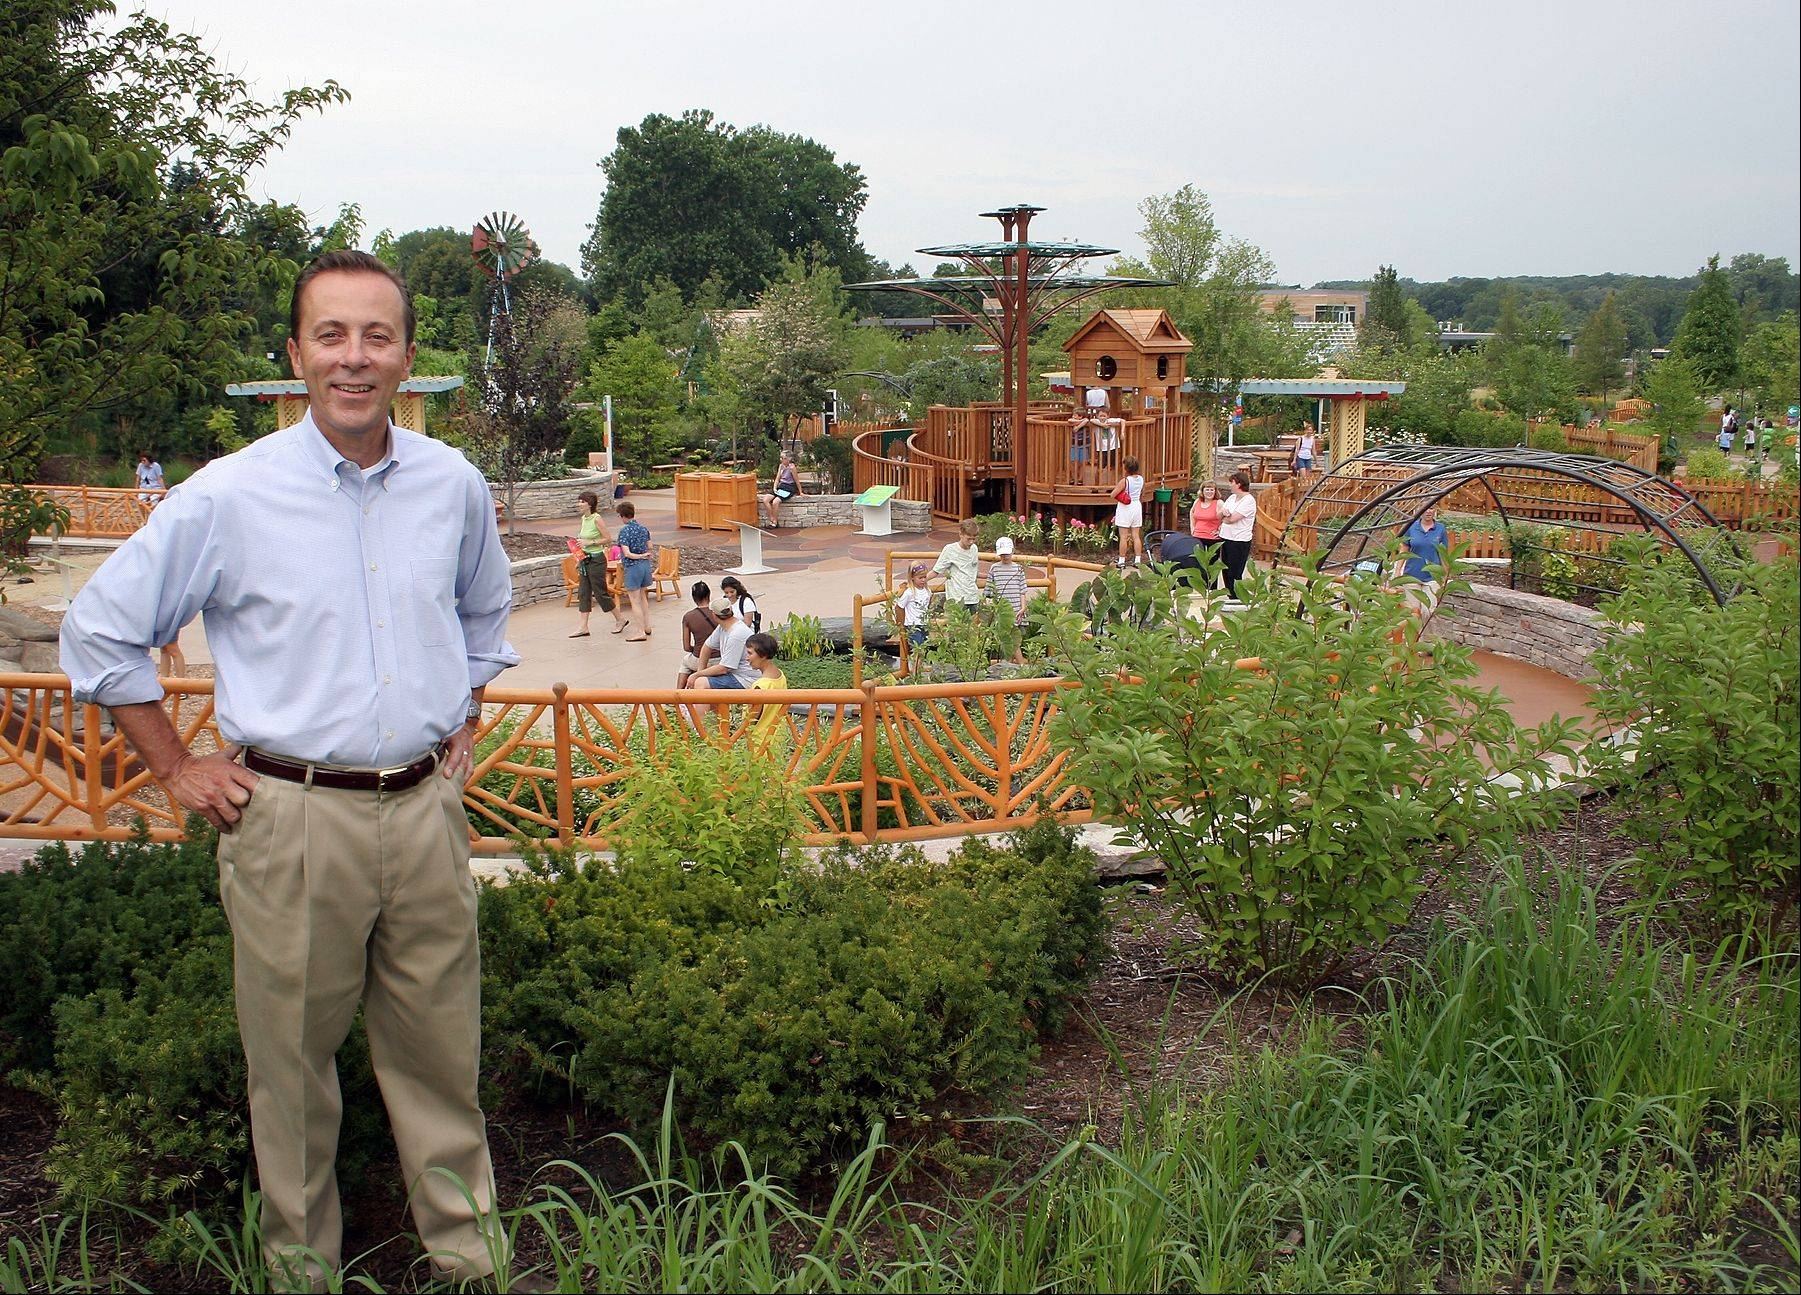 Gerard Donnelly, president and CEO of the Morton Arboretum in Lisle, is the 2013 recipient of the most prestigious honor conferred by the American Public Gardens Association.